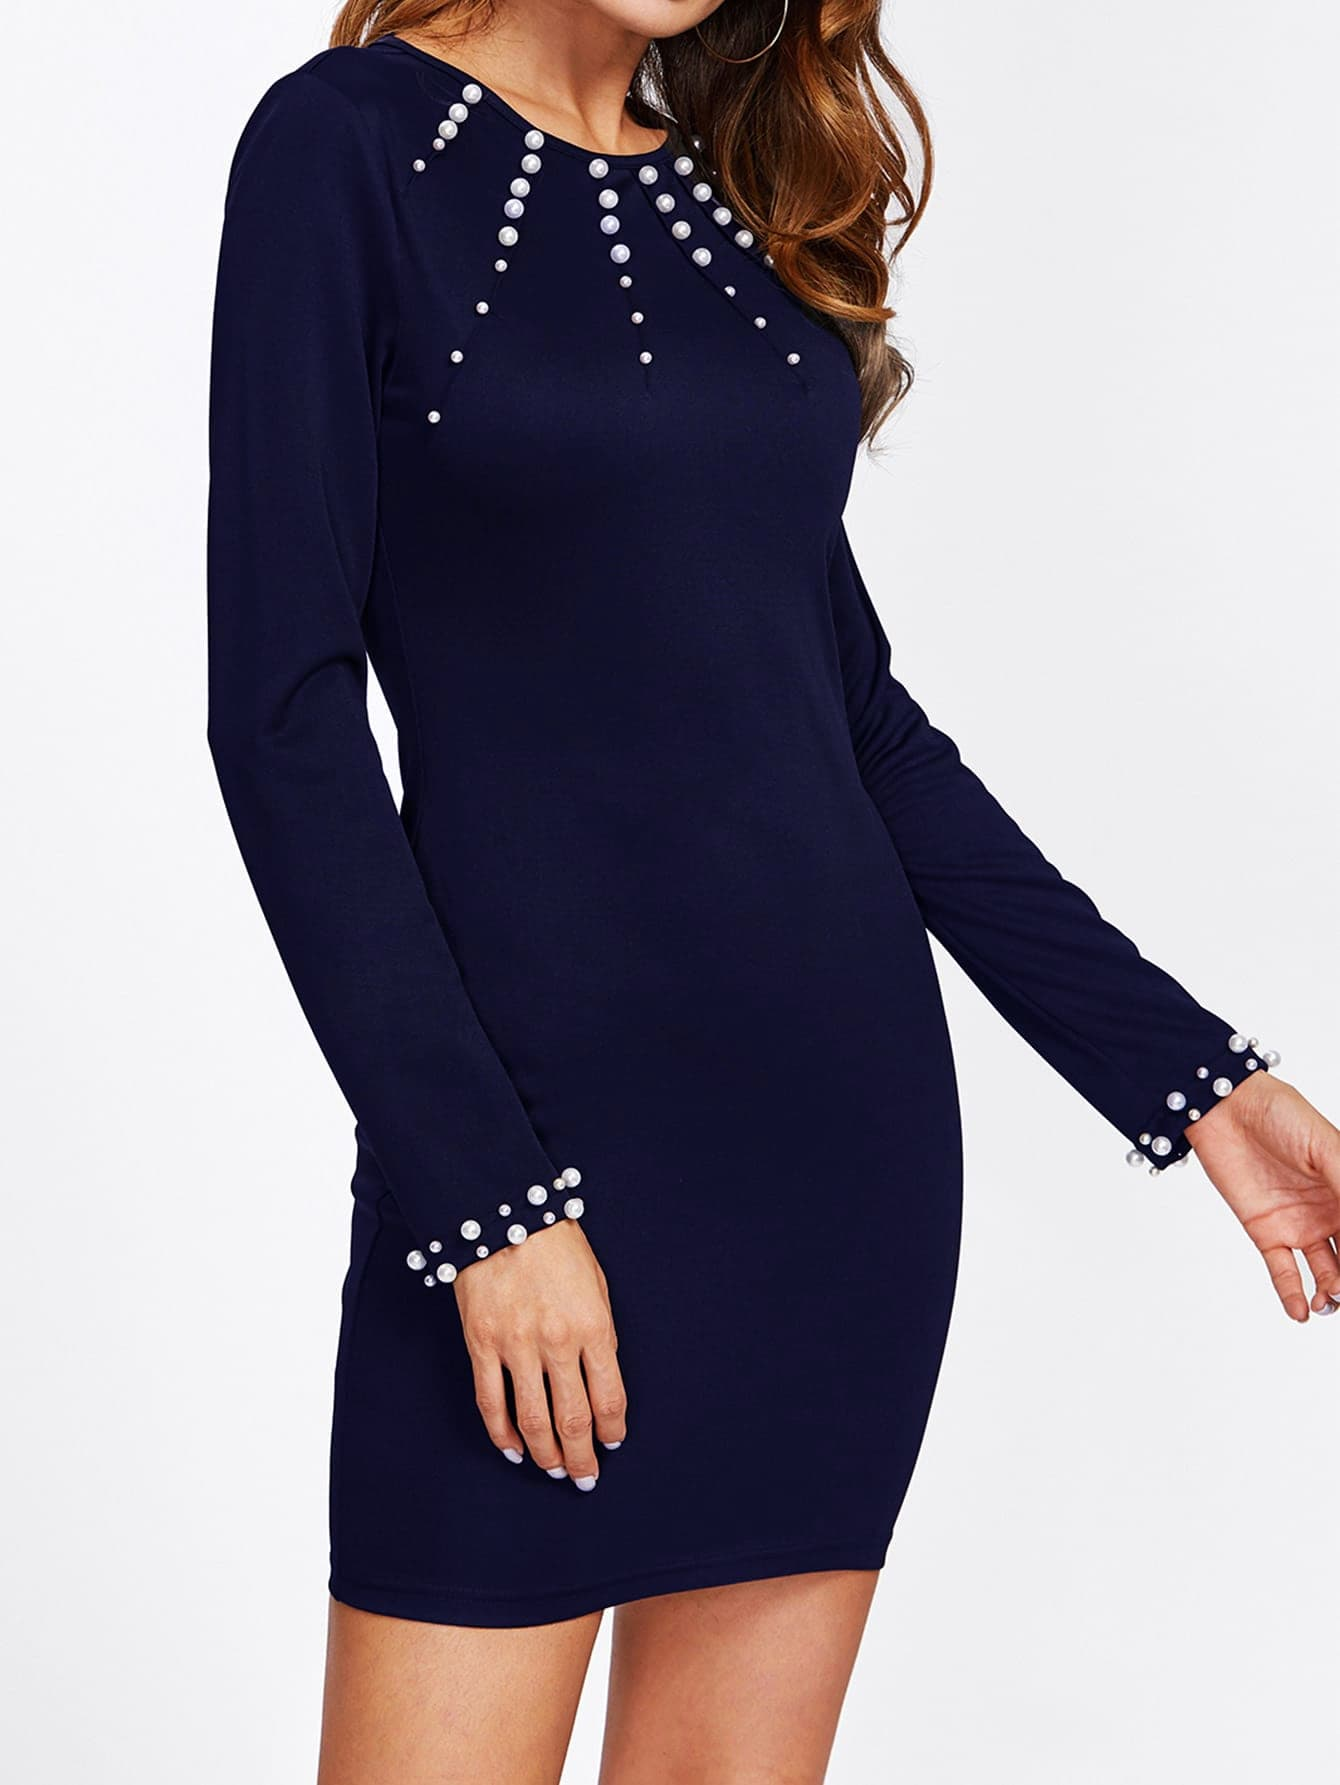 Pearl Beaded Embellished Navy Long Sleeve Mini Dress